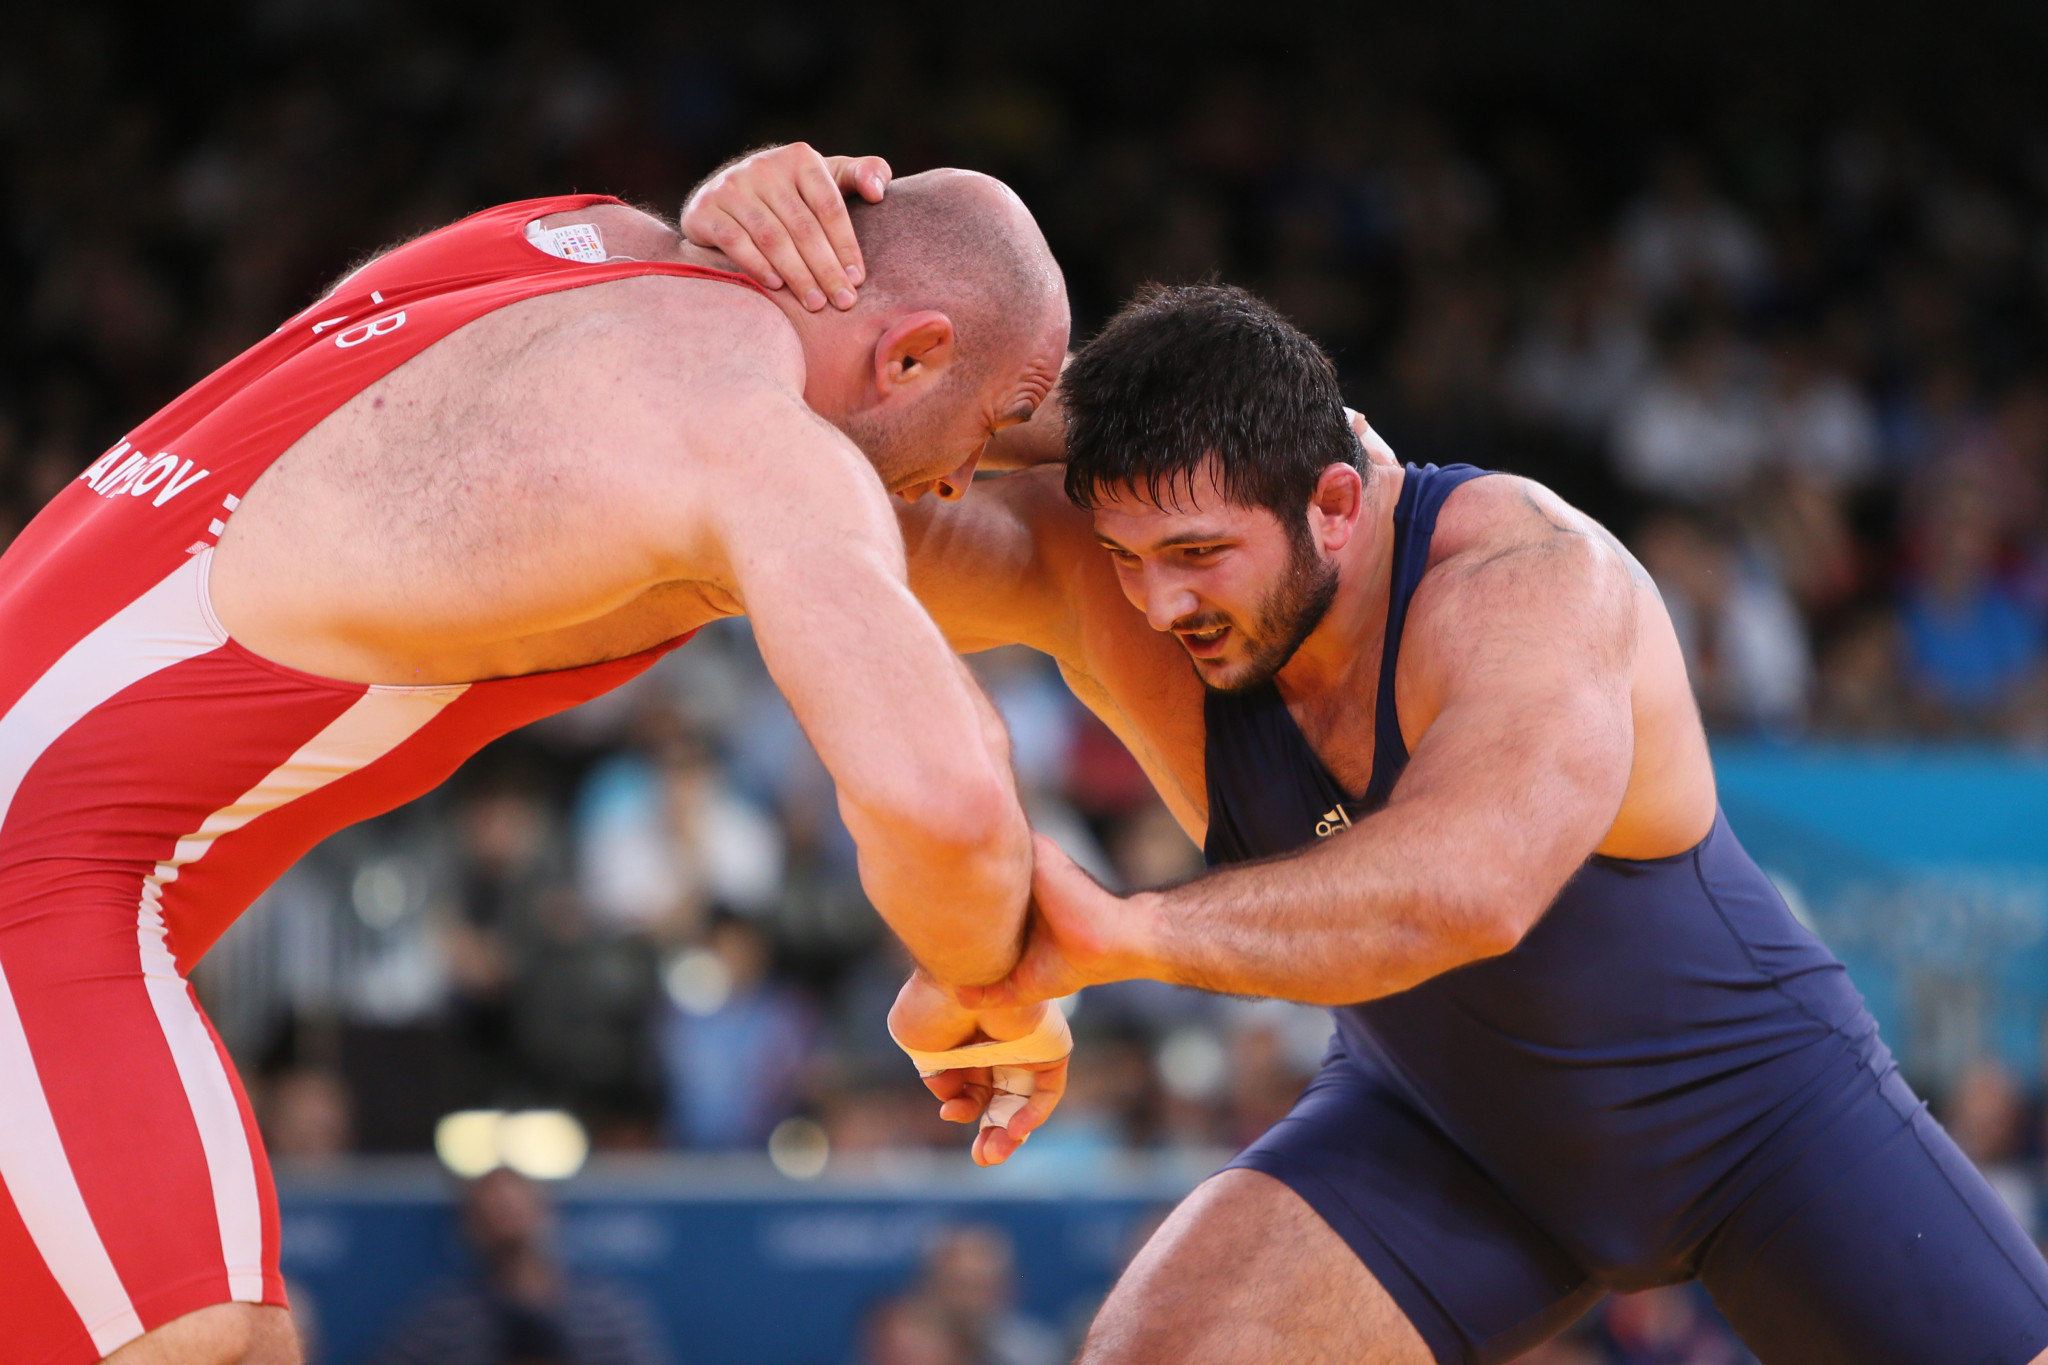 Davit Modzmanashvili has been stripped of the silver medal he claimed in the men's 120 kilograms freestyle wrestling event at the London 2012 Olympic Games ©Getty Images